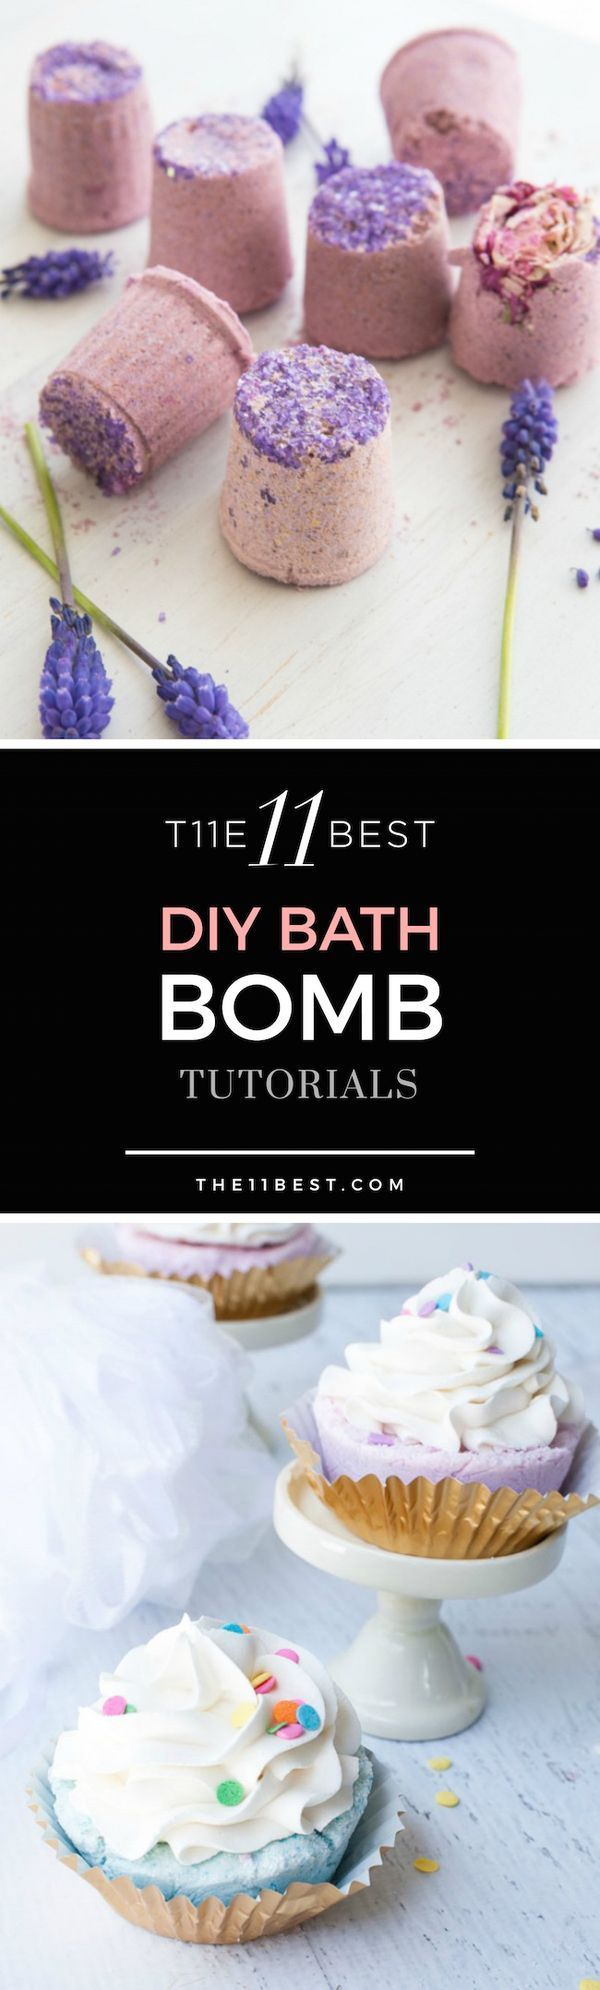 Use these bath bomb recipe ideas to create a nice spa bath for yourself or give them as a gift! #relaxationideas